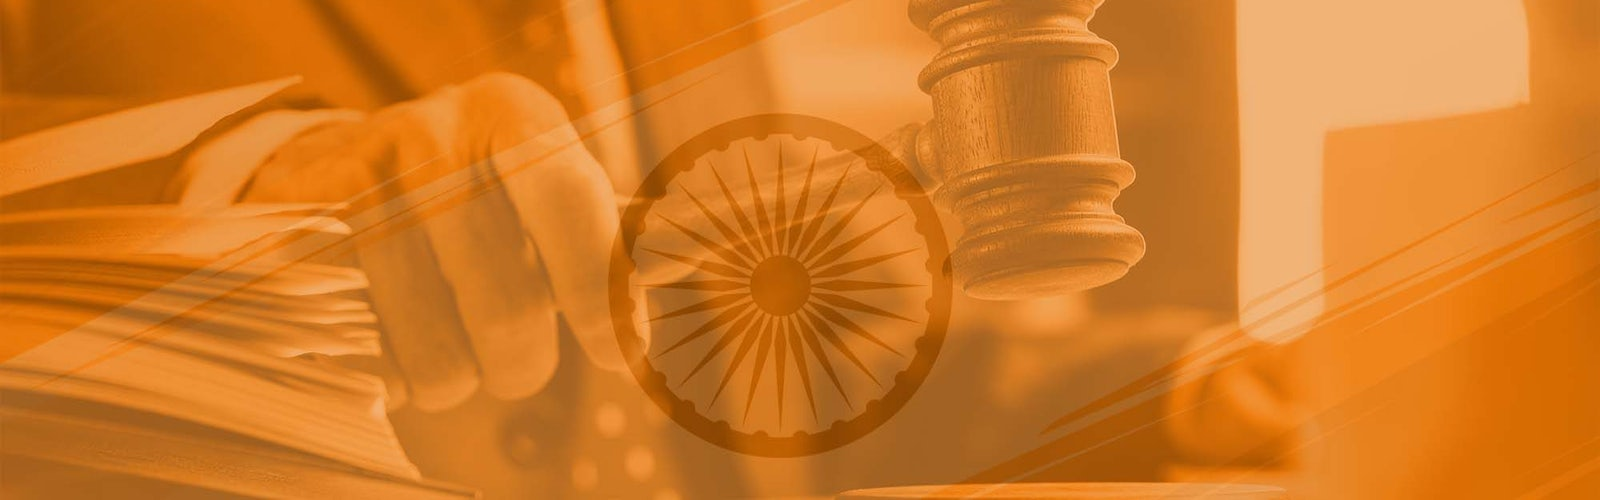 Legal situation india header image